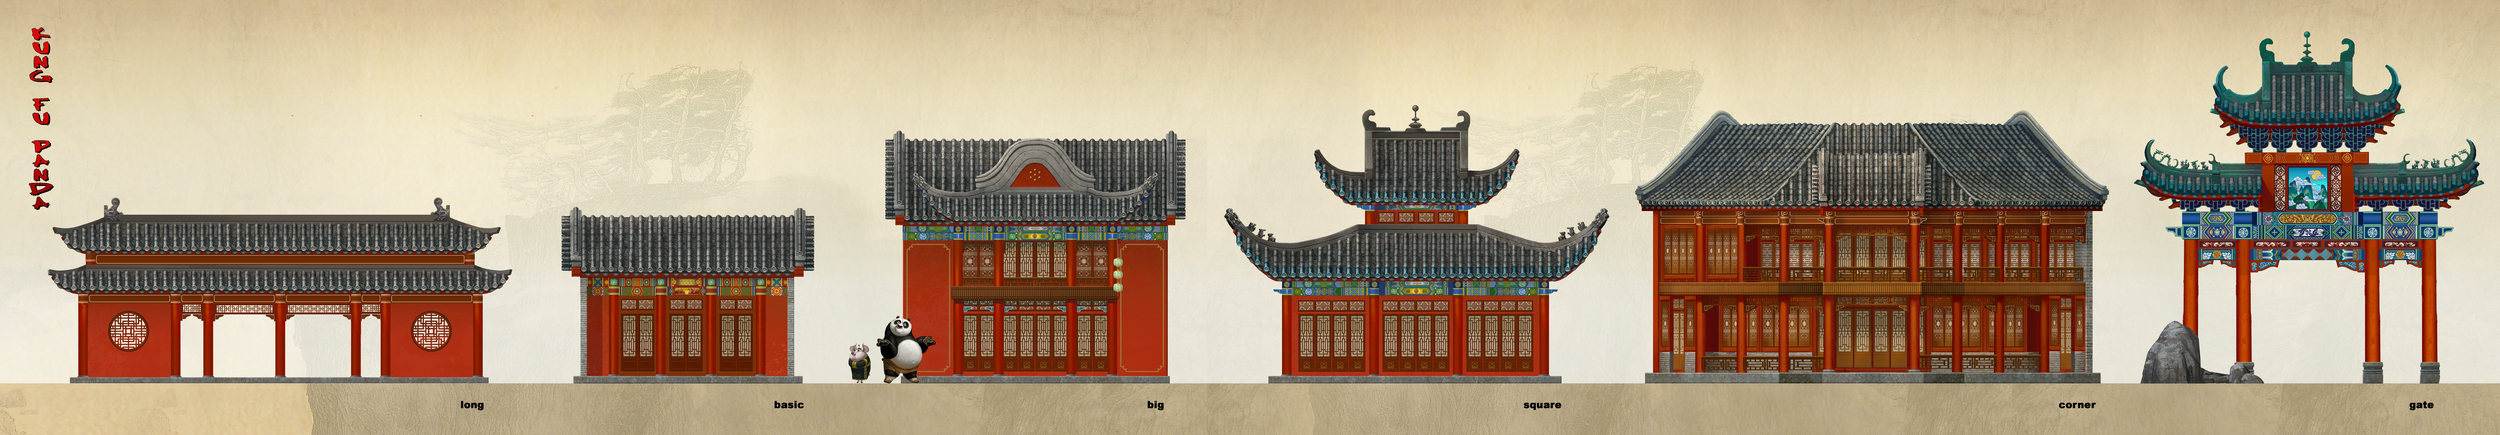 Kung Fu Panda, DWA Valley of Peace - Building design